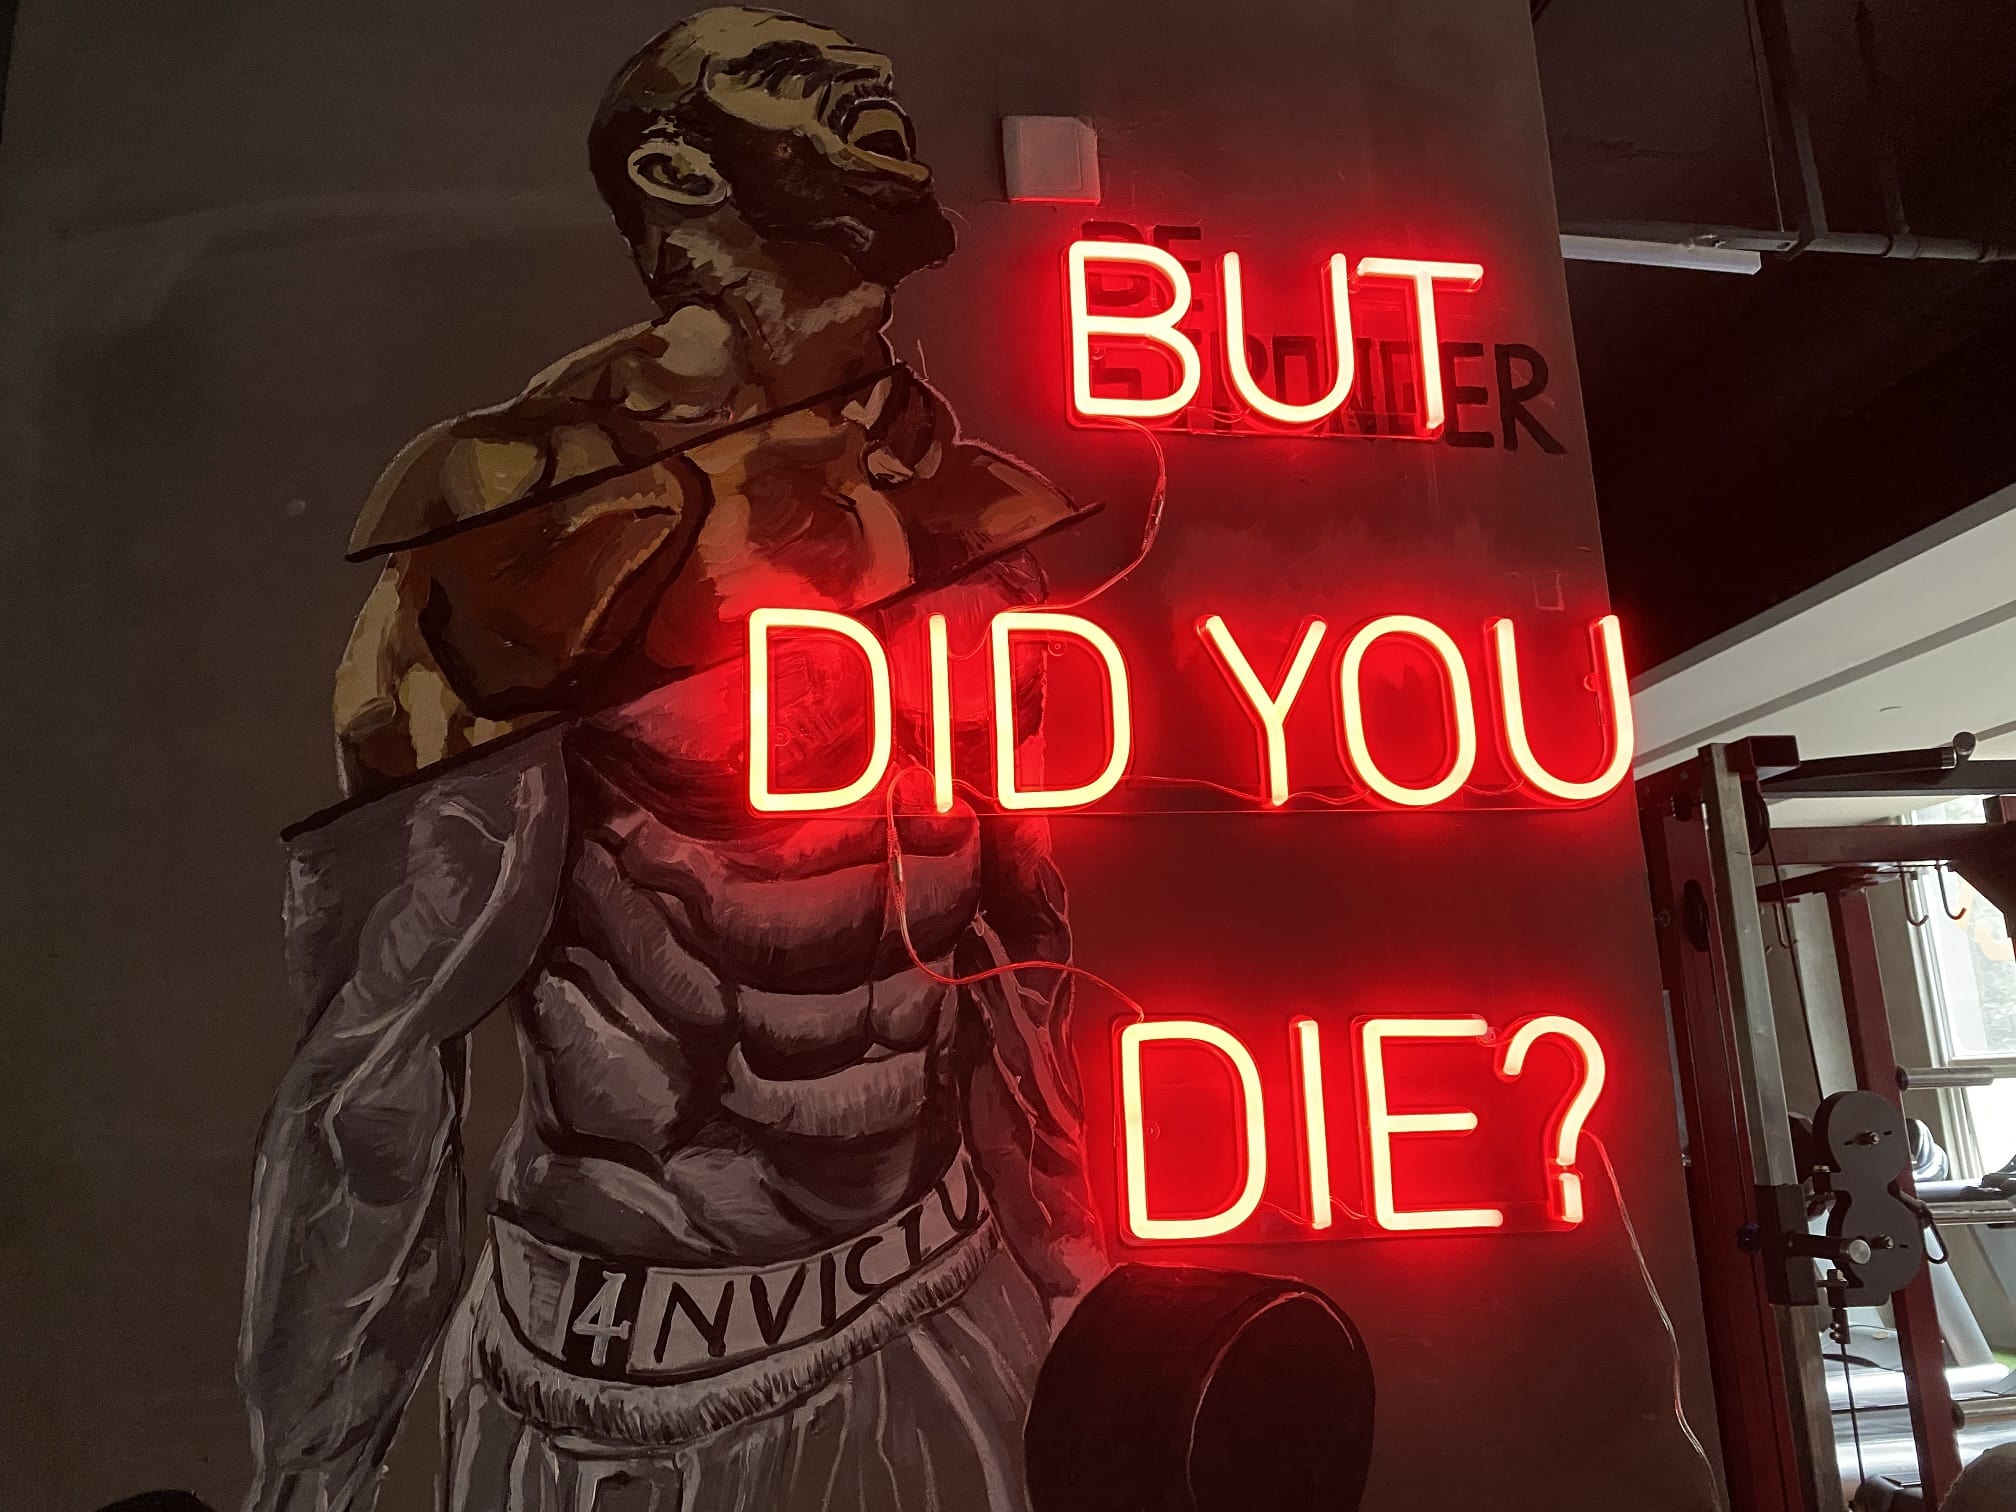 But did you die neon sign